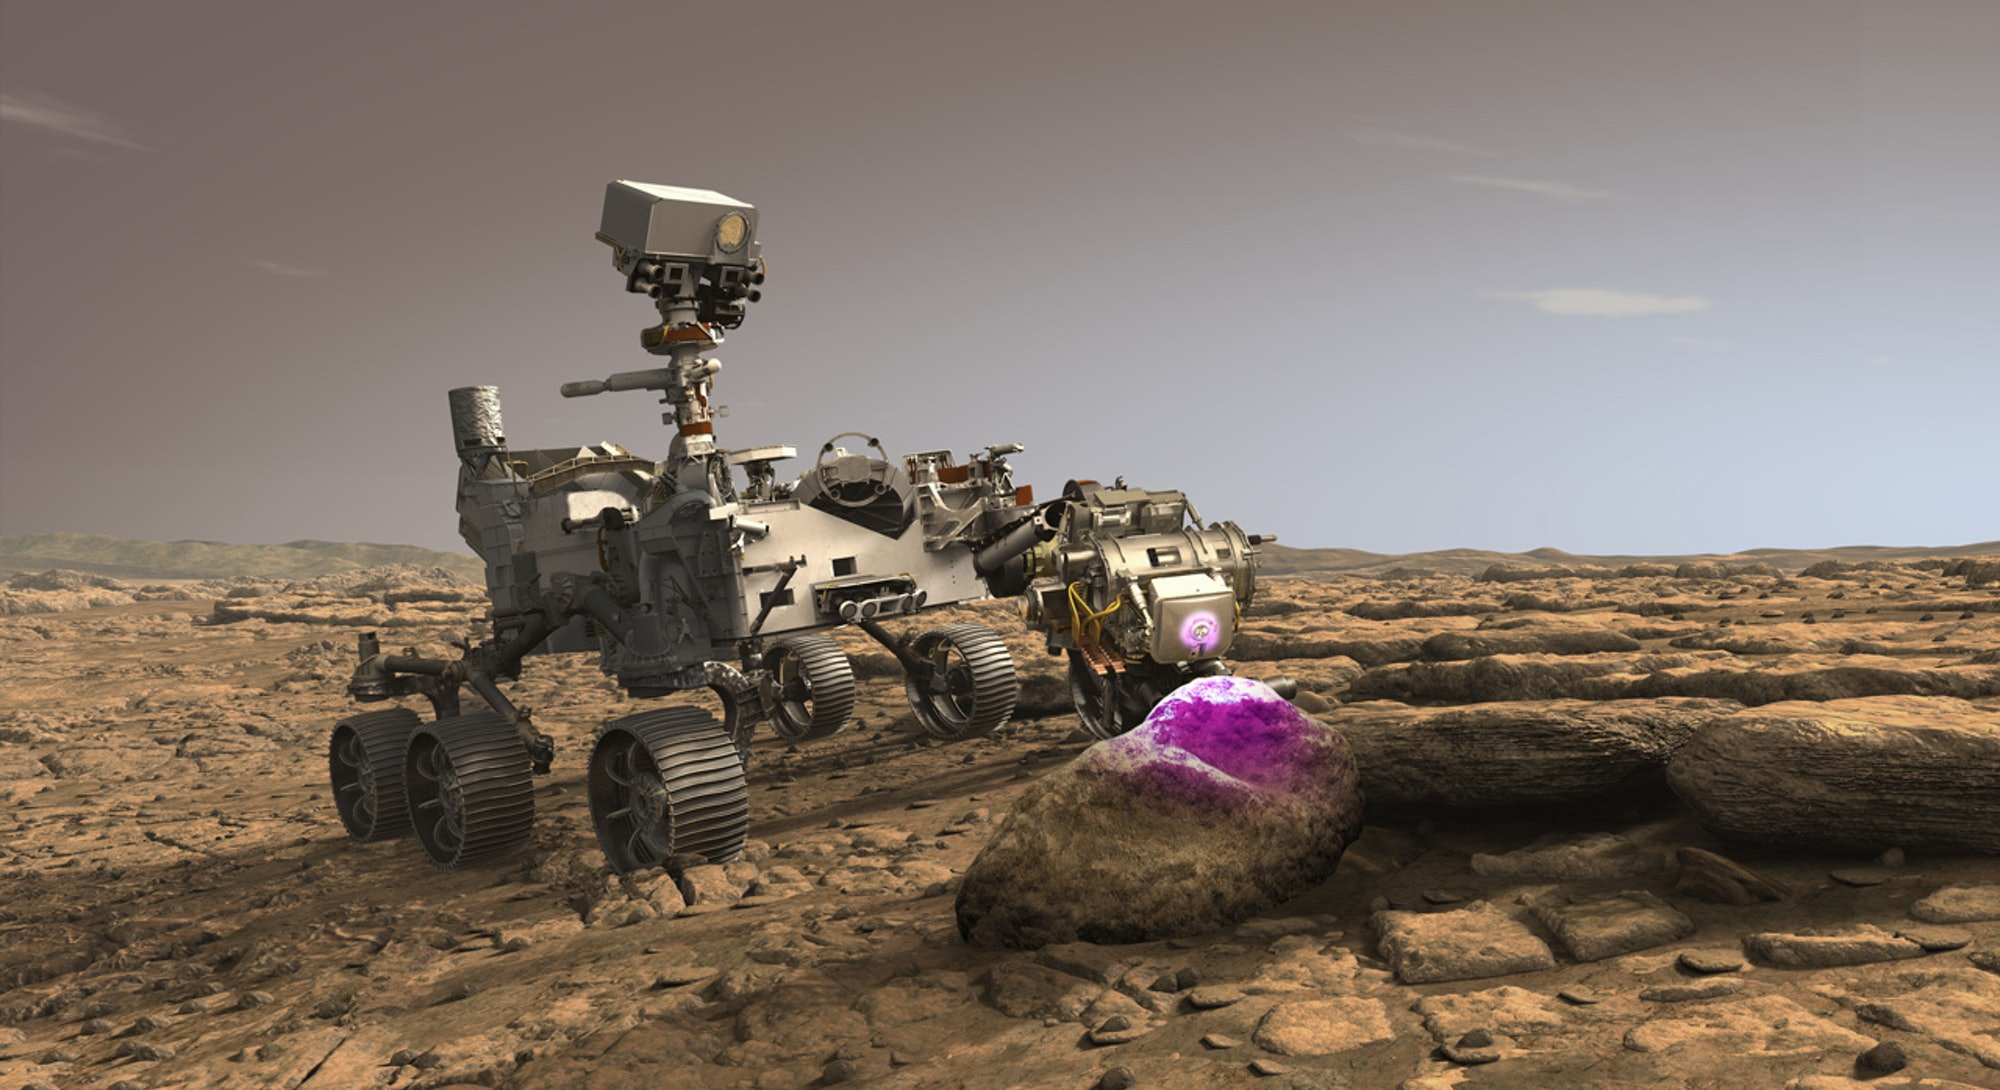 An illustrated image of the Perseverance rover on the surface of Mars.